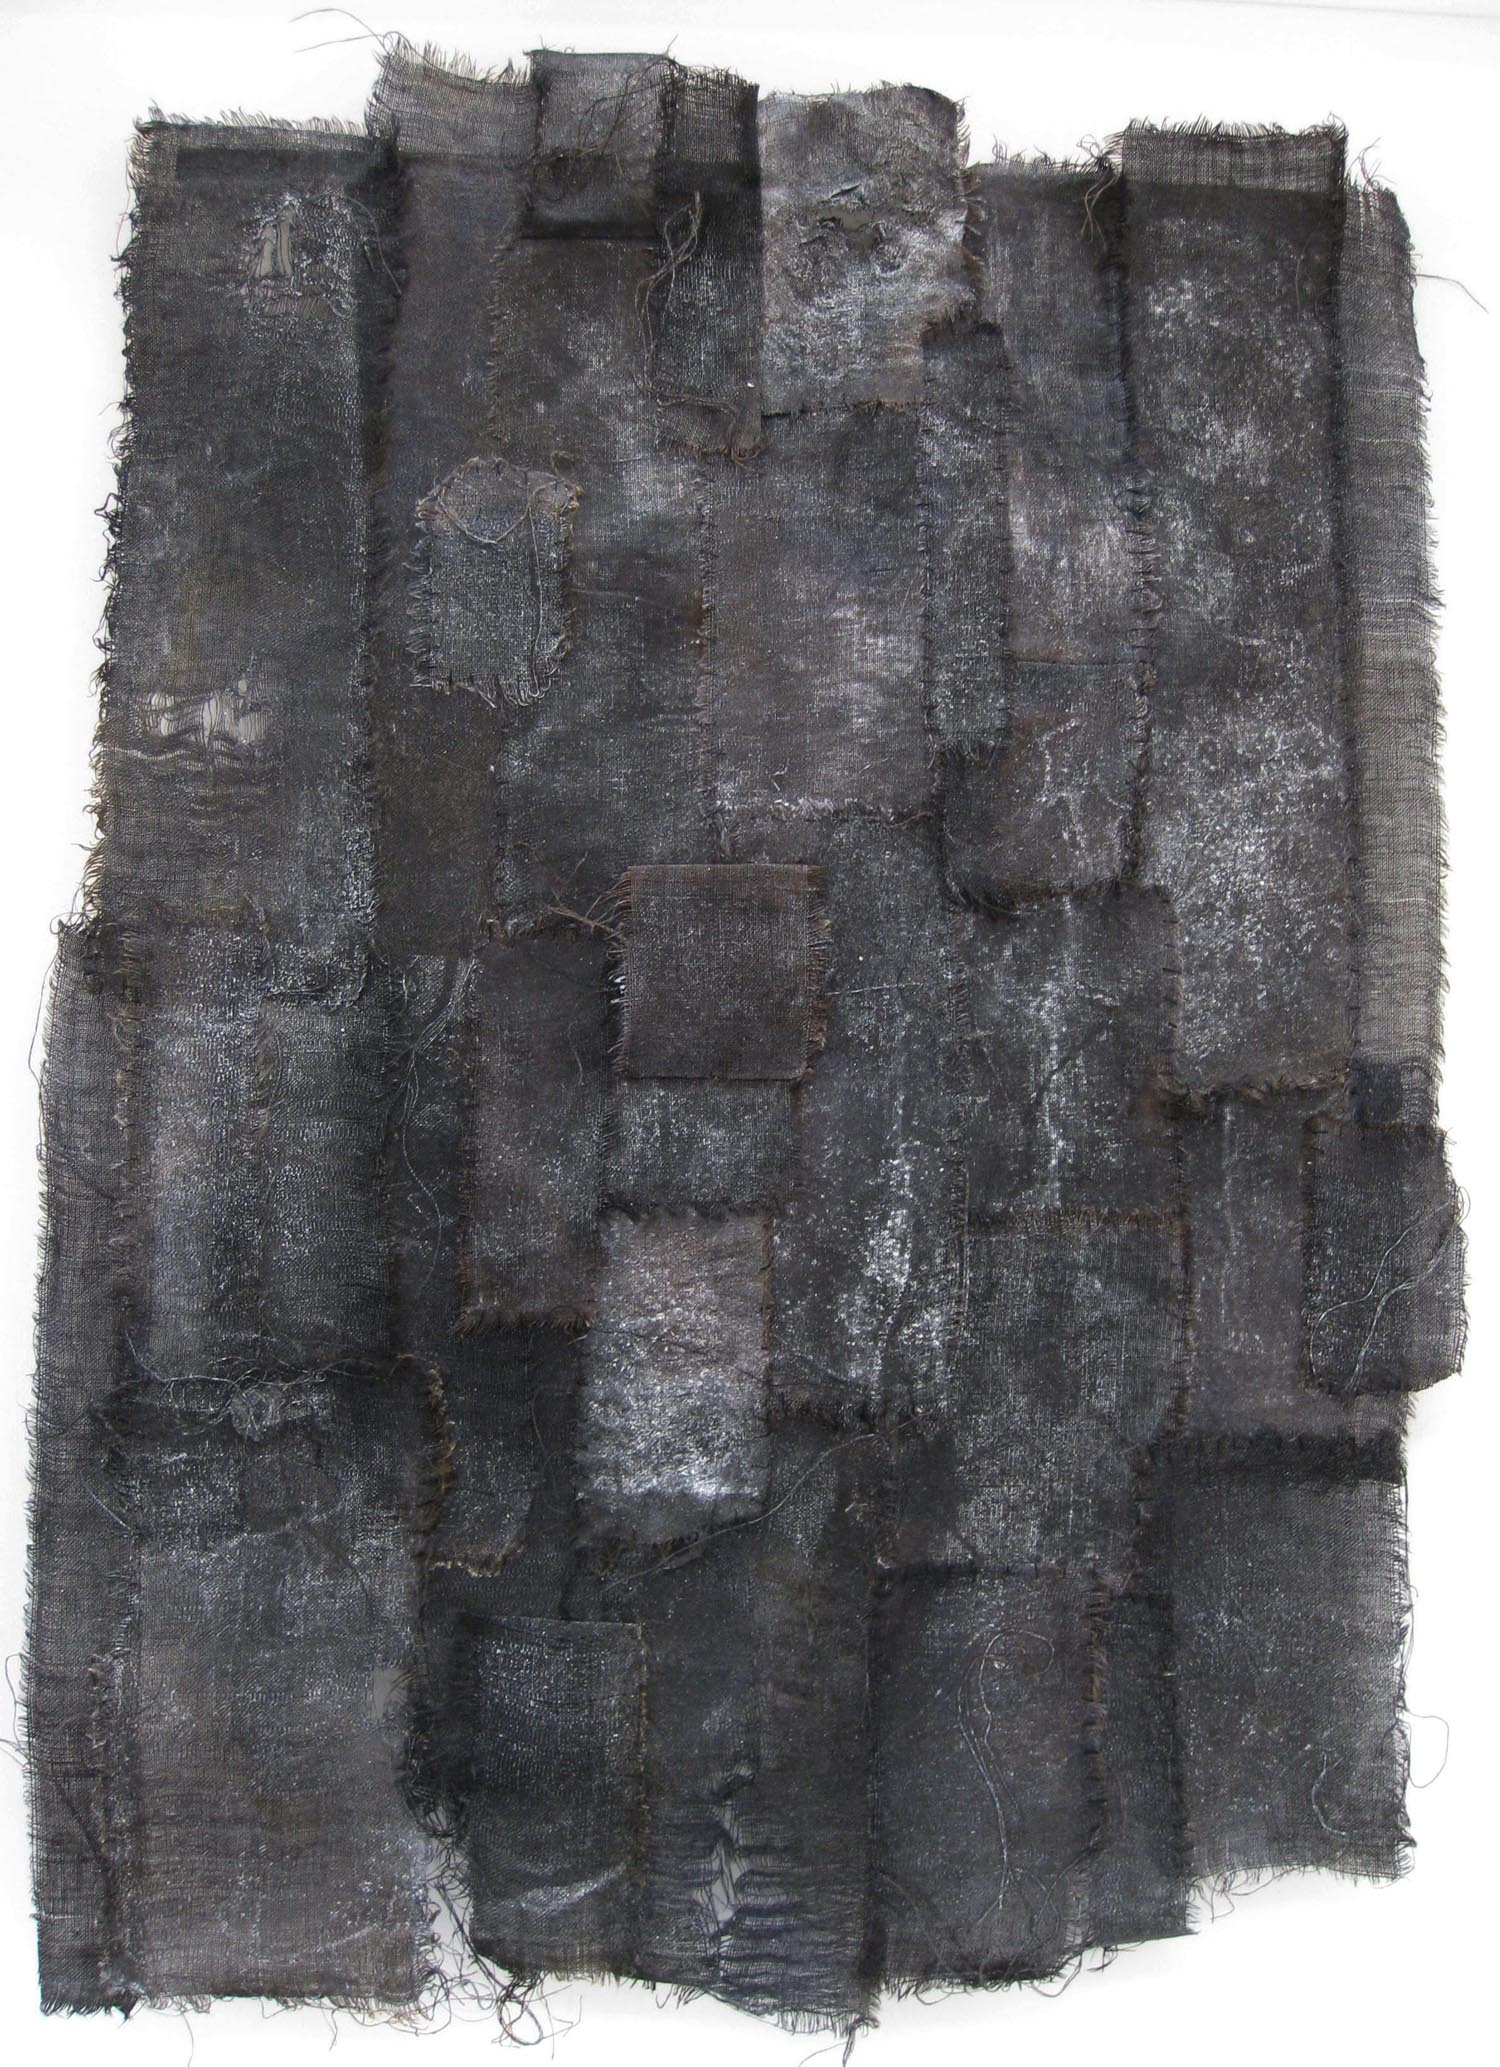 Lead-and-linen-image-1